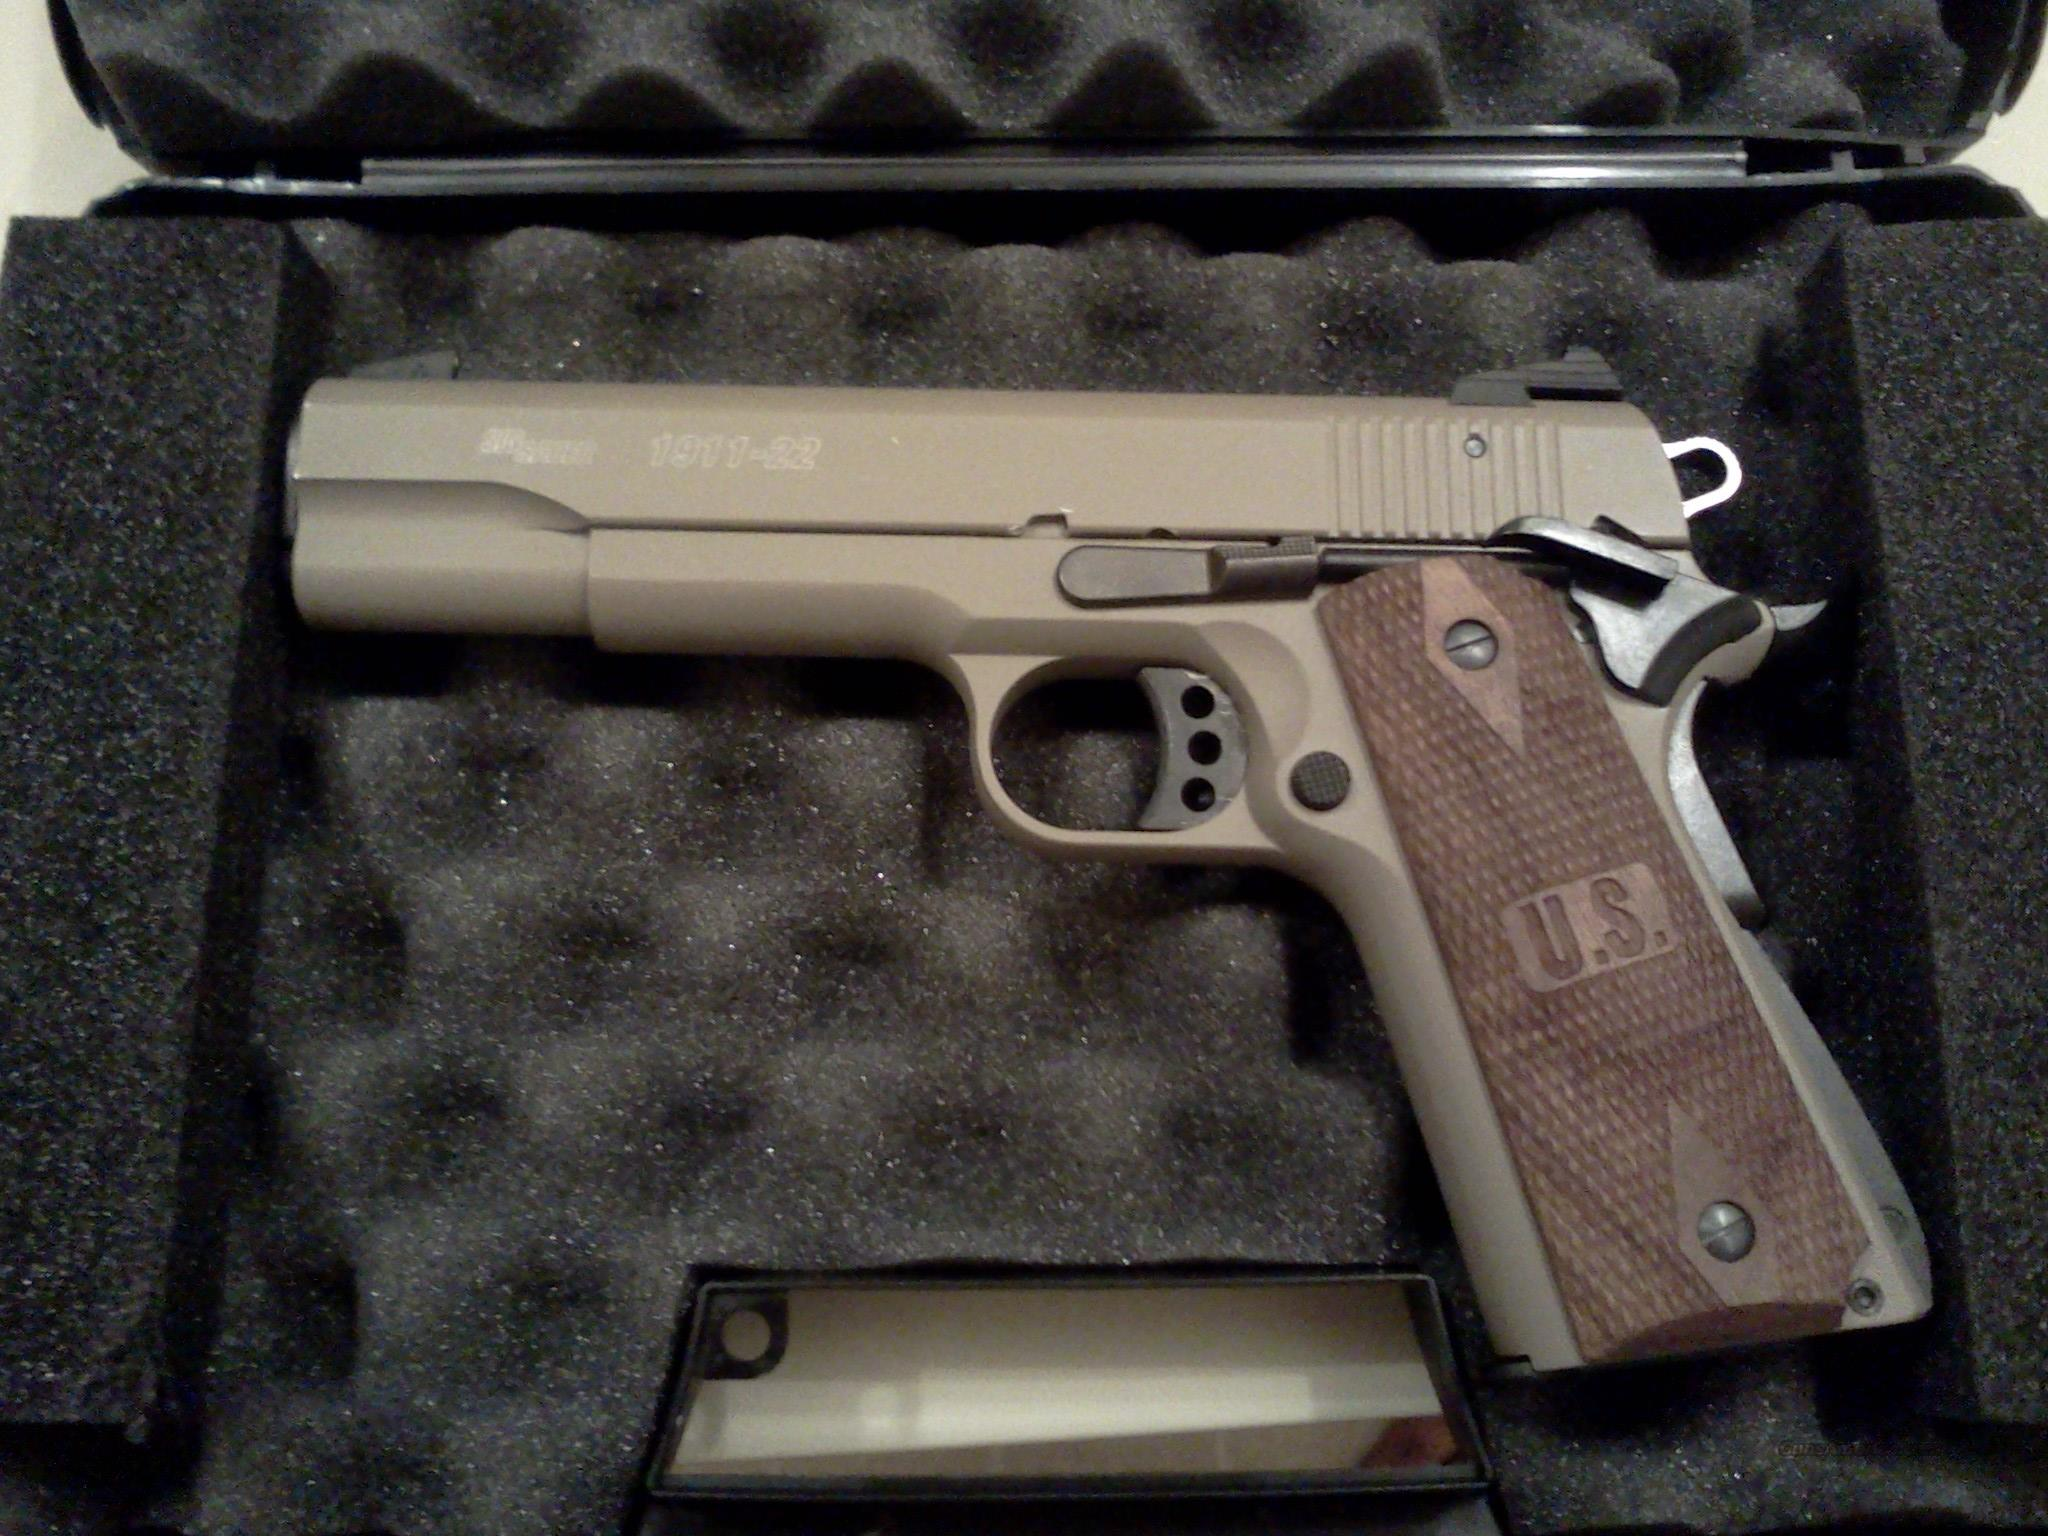 Sig Sauer 1911-22 FDE w/ SS Guide Rod & Recoil Spring Upgrade  Guns > Pistols > Sig - Sauer/Sigarms Pistols > 1911